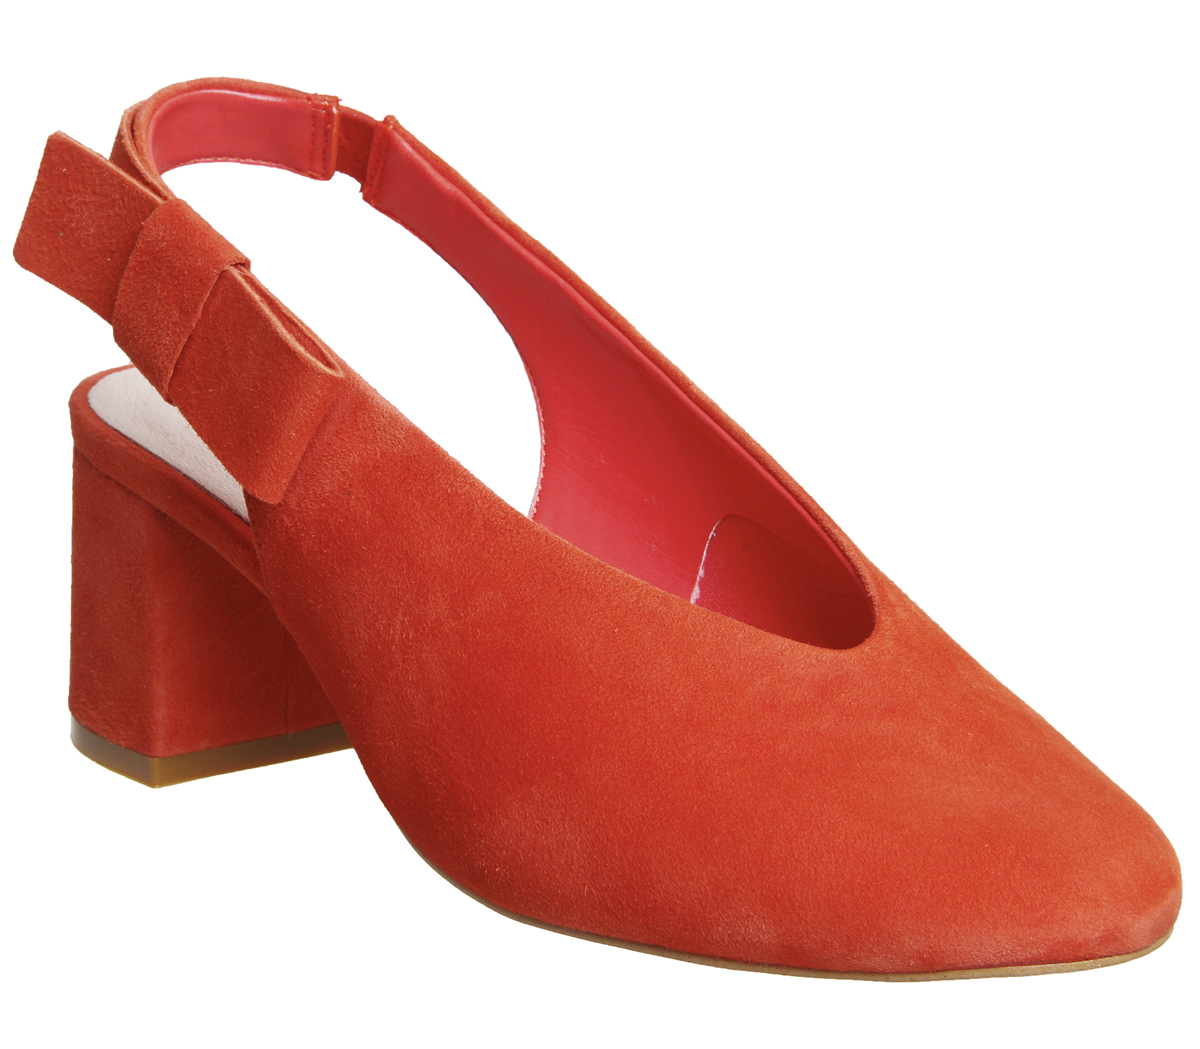 Womens-Office-Magical-Bow-Slingback-Heels-Red-Suede-Heels thumbnail 3